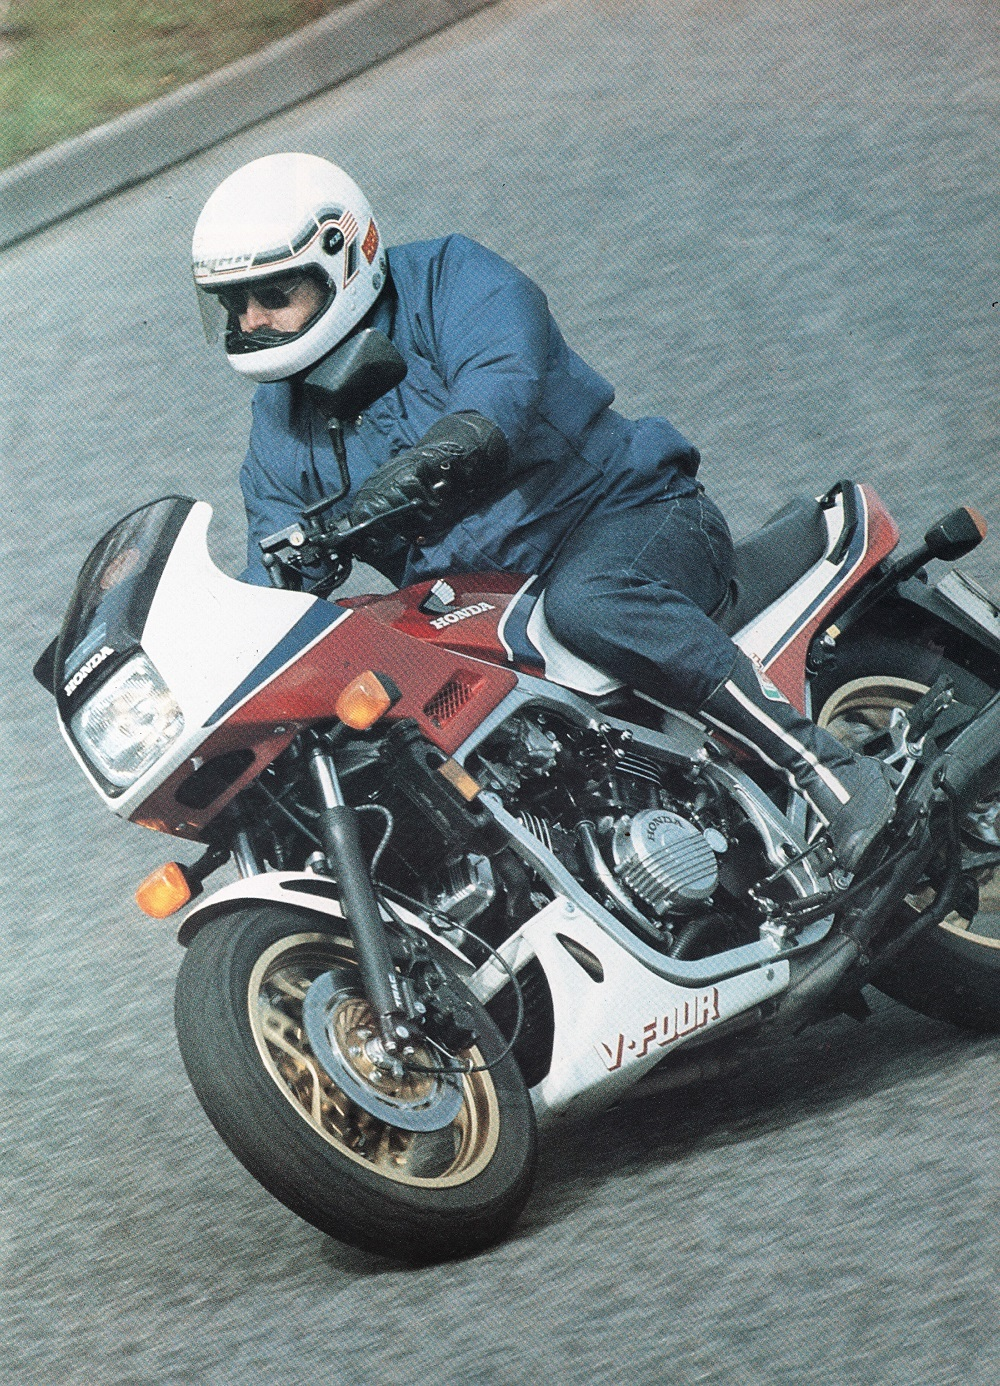 1983 Honda VF750F road test.4.jpg